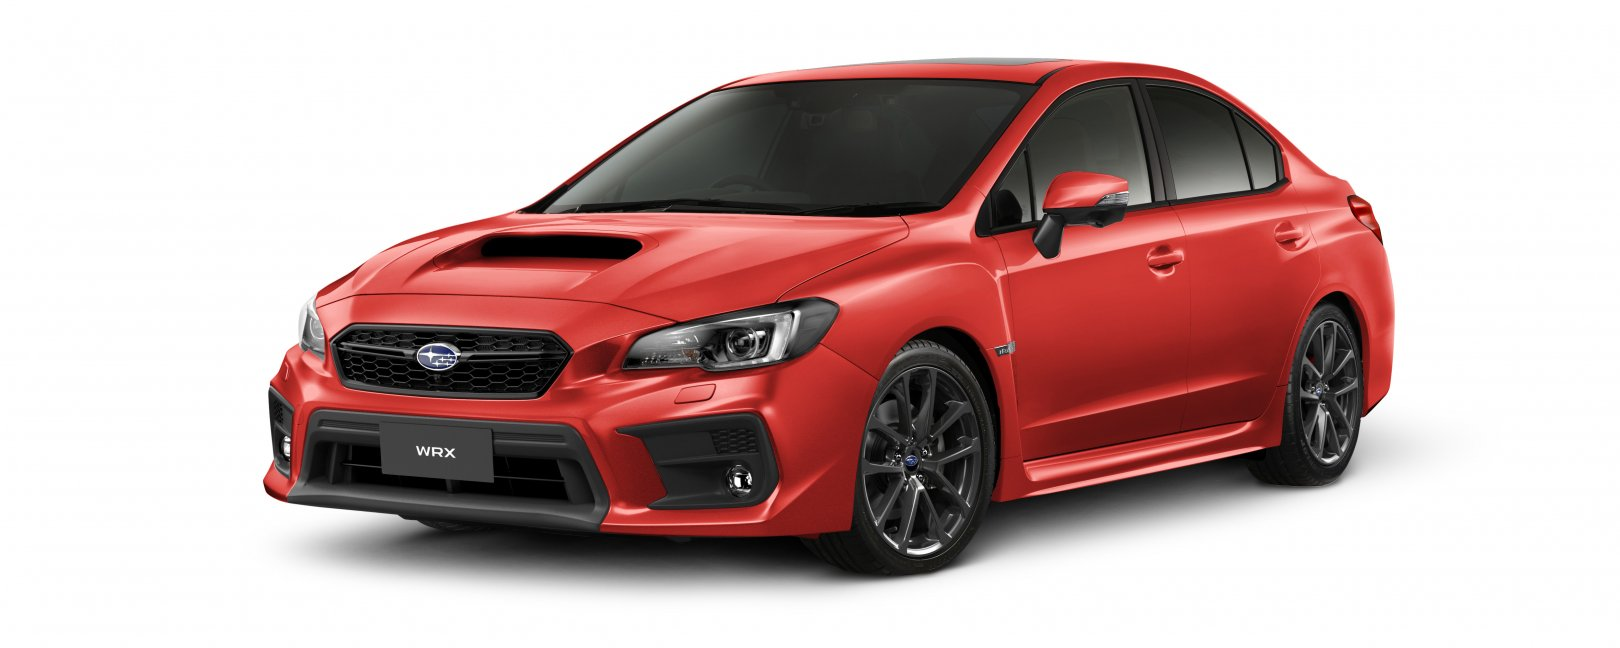 2020 WRX premium in pure red